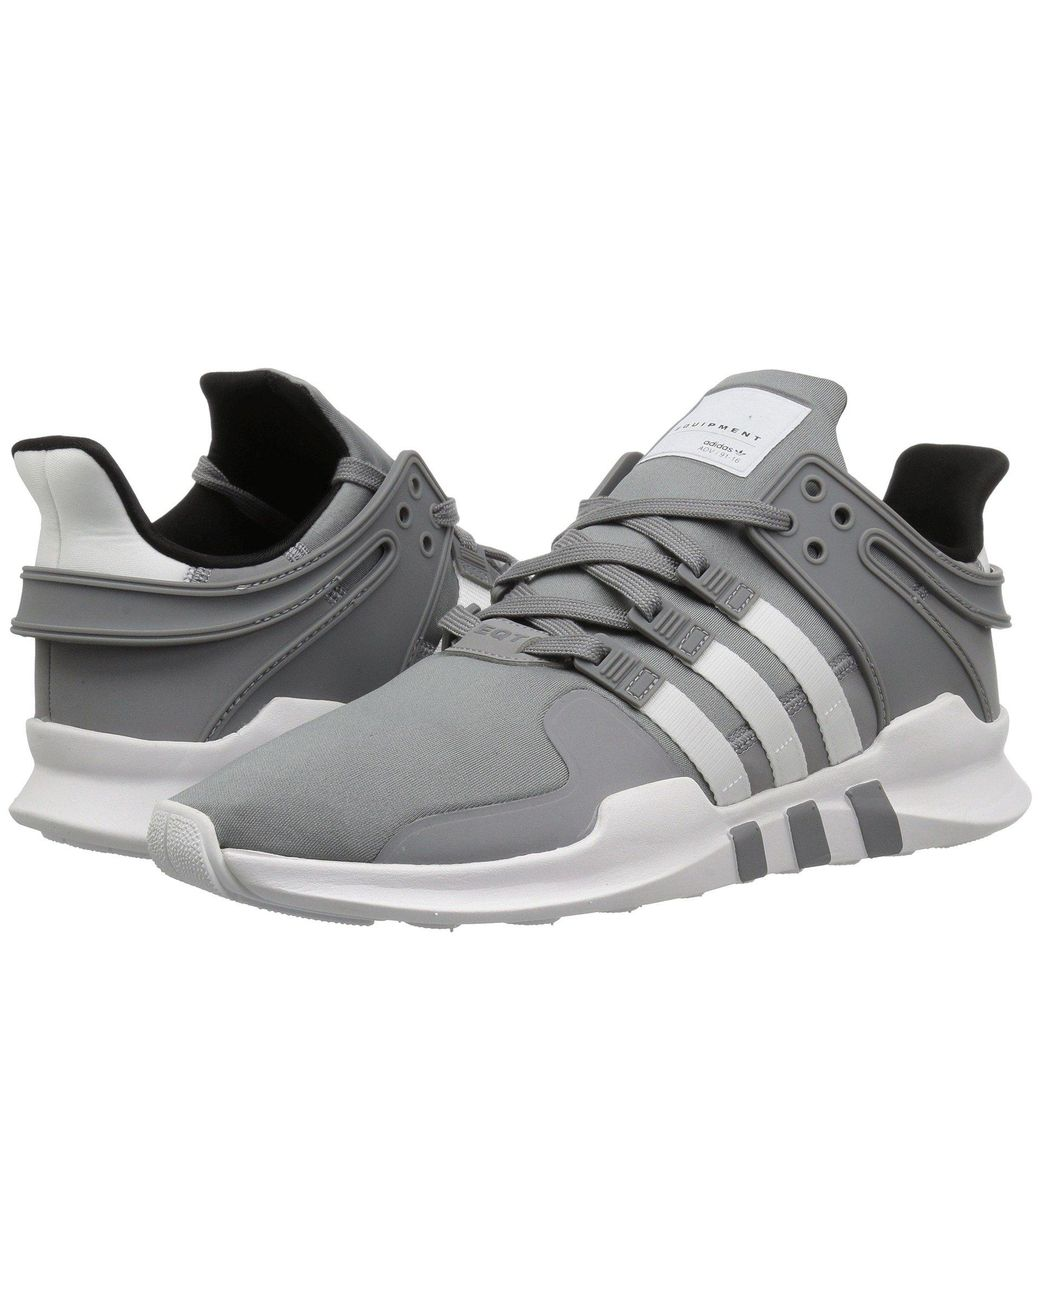 7844900a4 Lyst - adidas Originals Eqt Support Adv (trace Pink white black) Men s  Shoes for Men